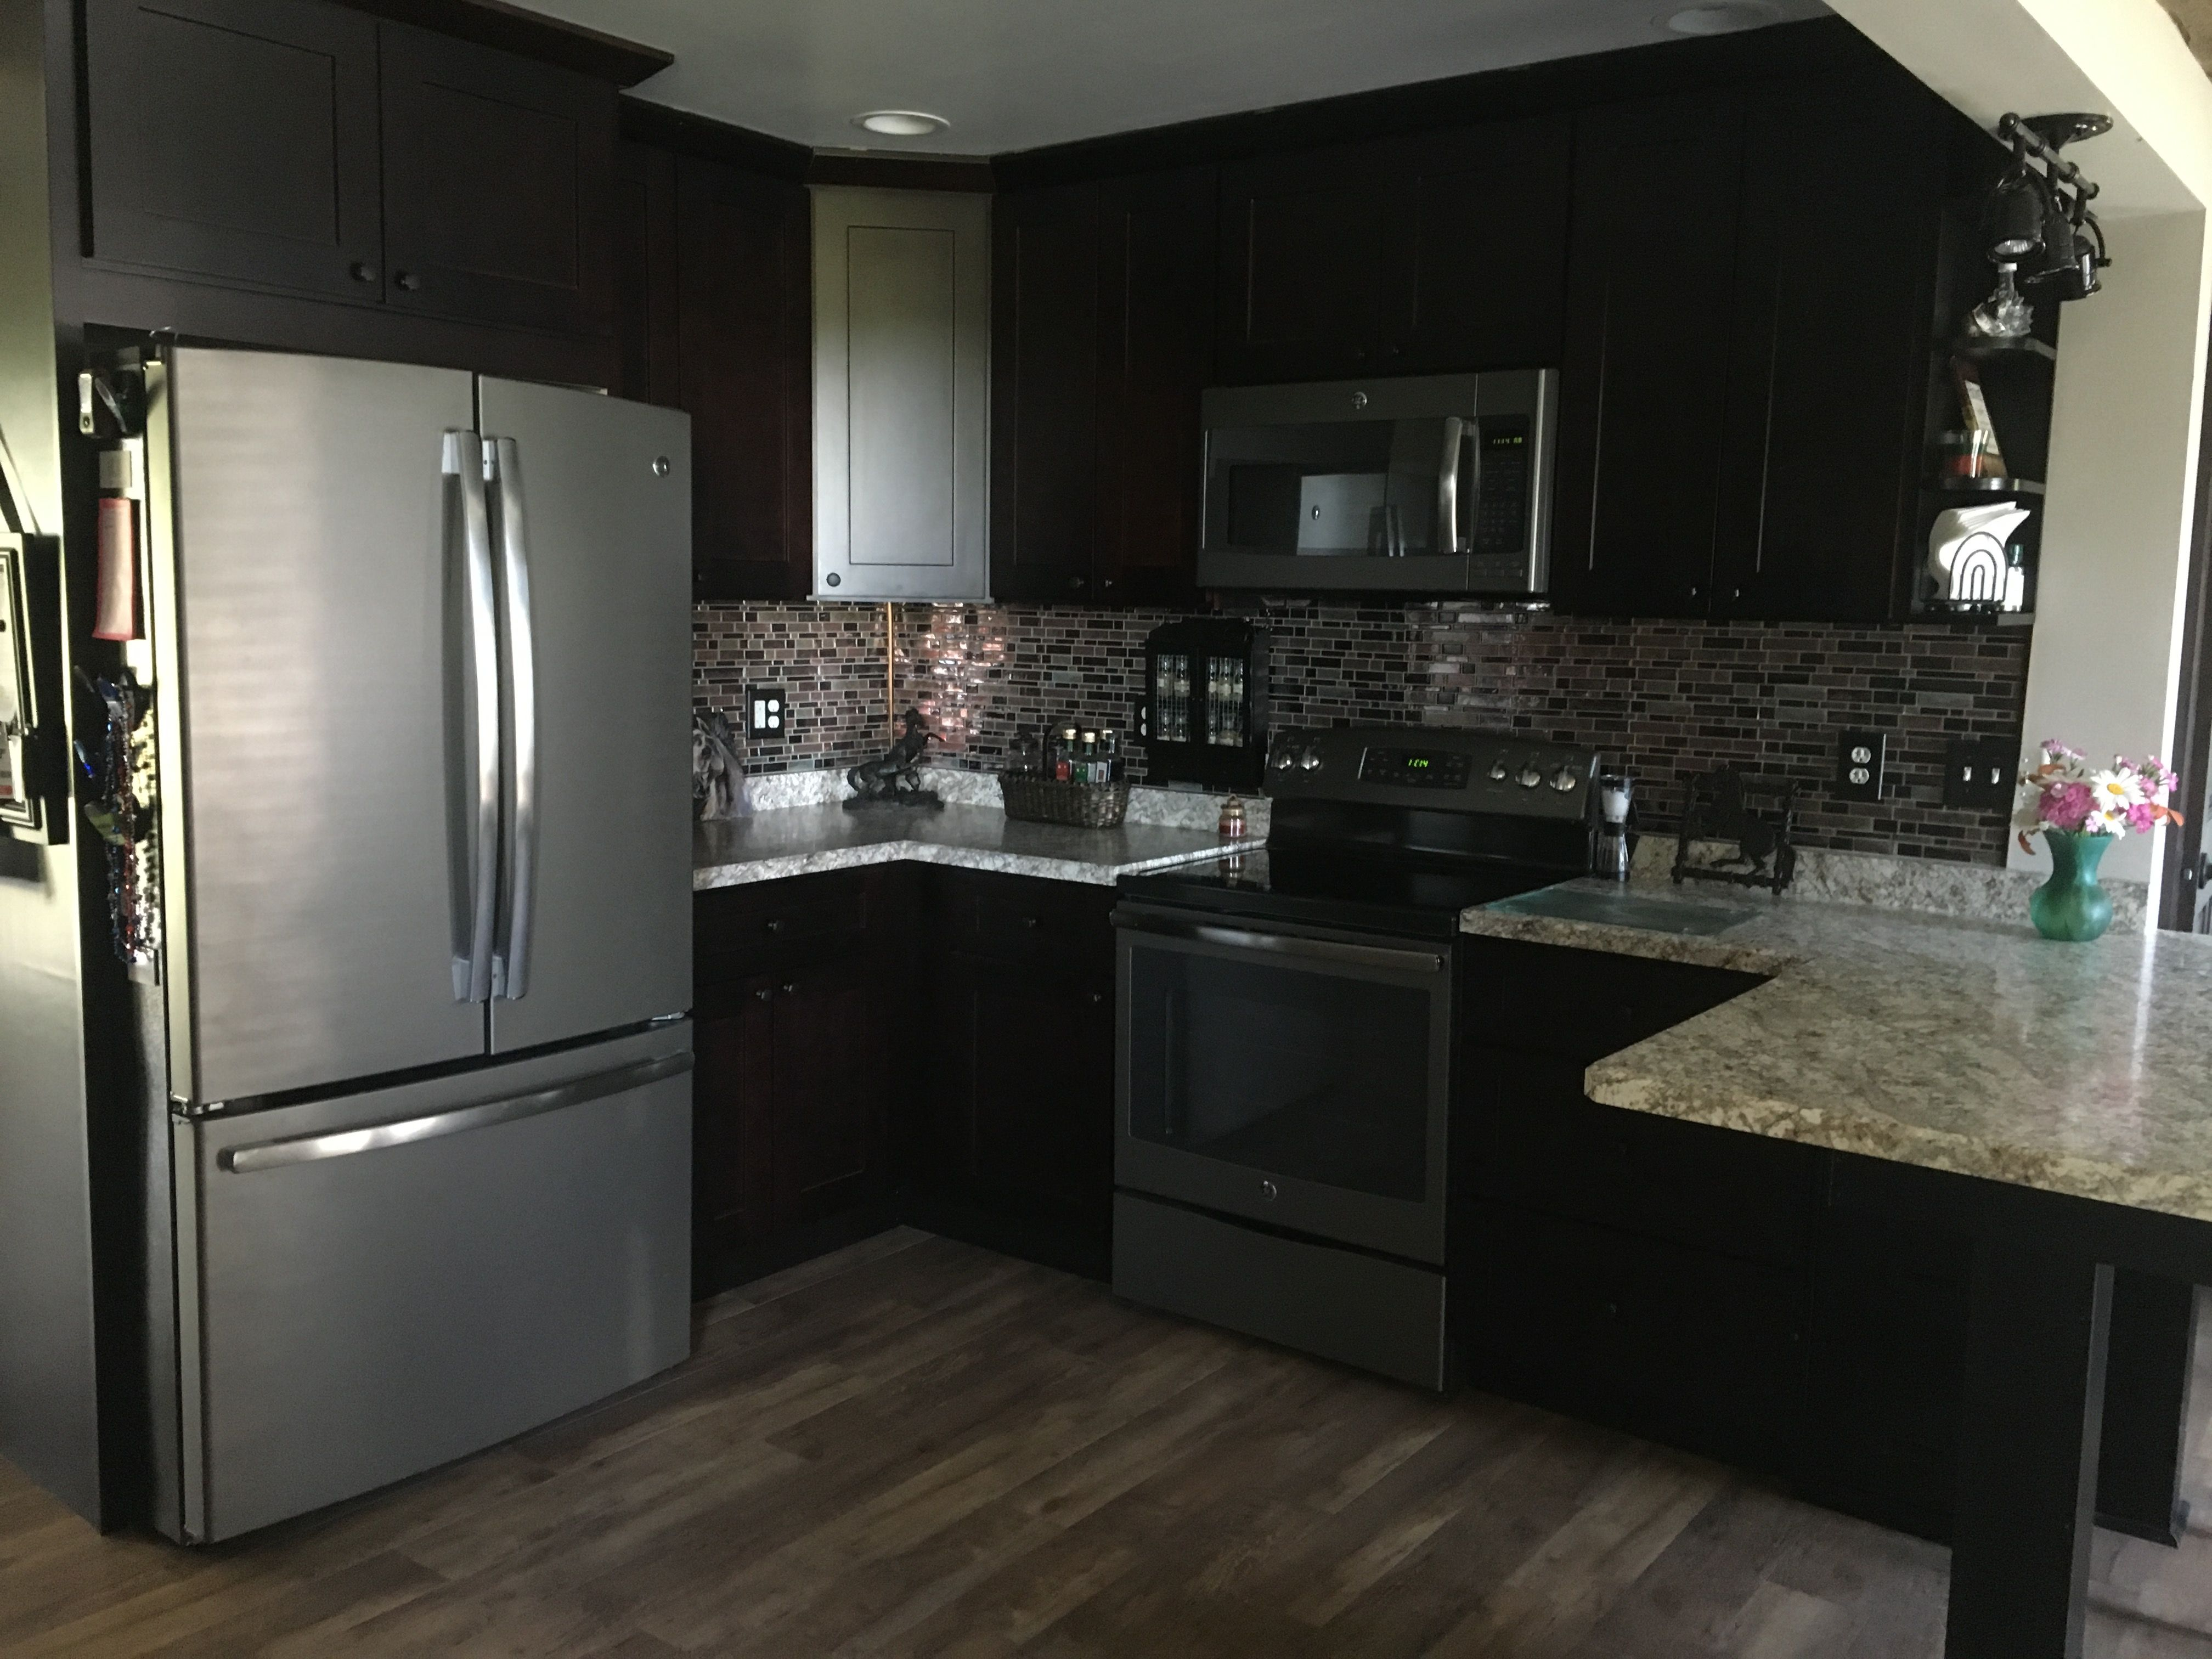 Hello Guys Shaker Espresso Kitchen Refacing By Lily Ann Cabinets Customer R Kitchen Cabinet Styles Shaker Style Kitchen Cabinets Espresso Kitchen Cabinets